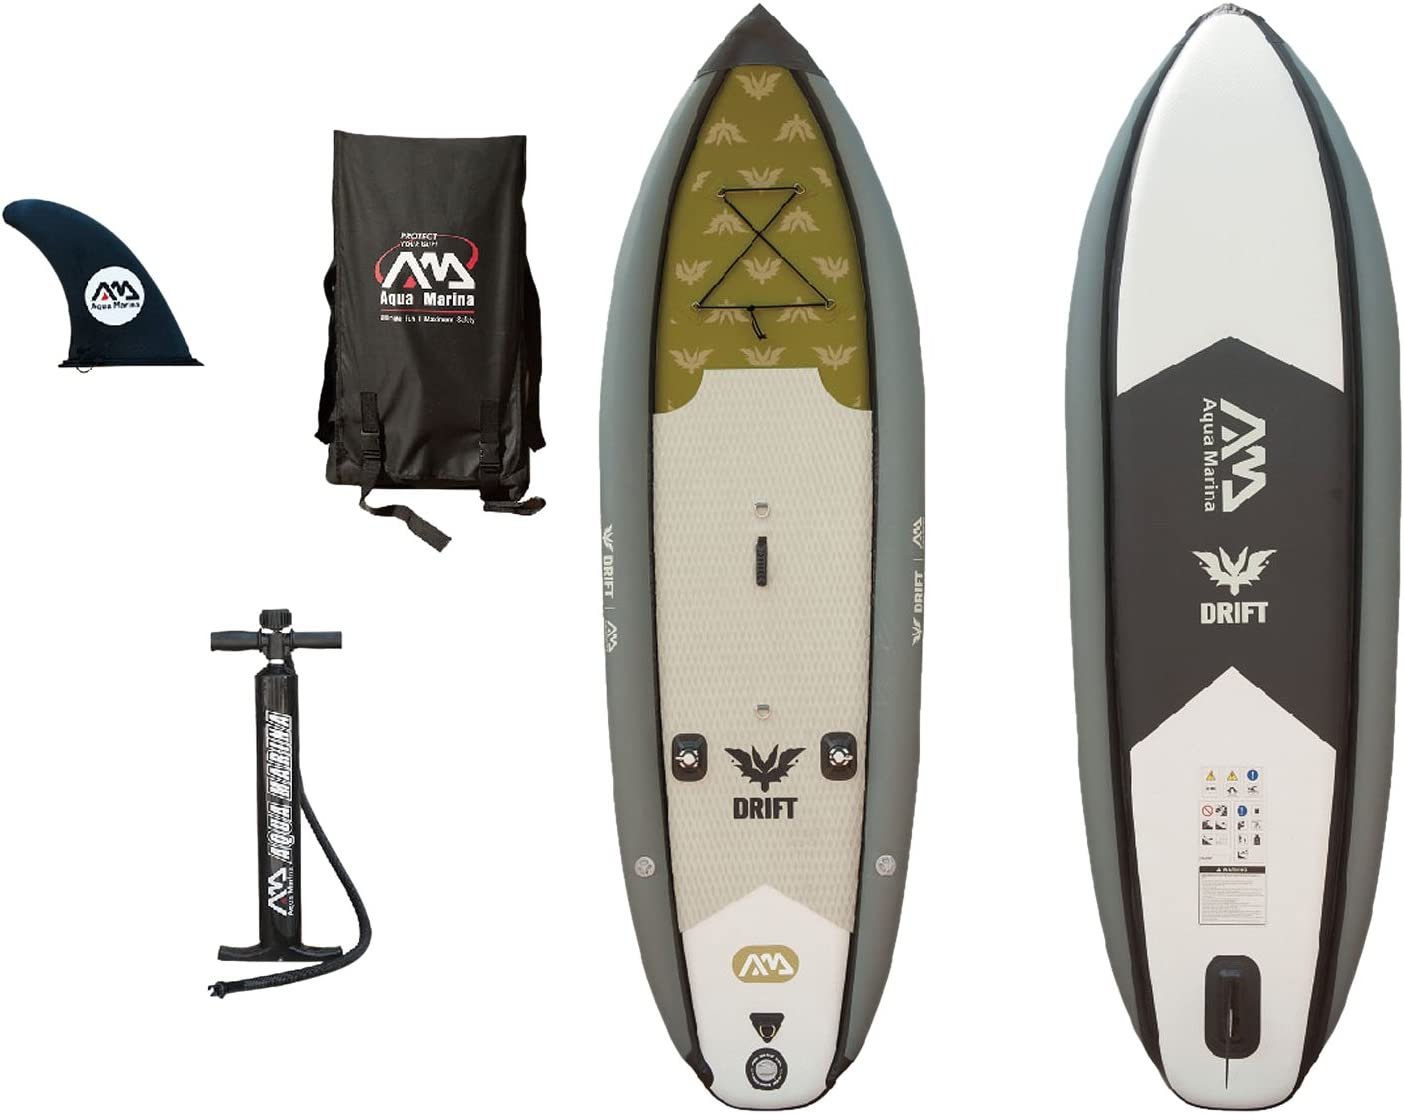 Aqua Marina Drift Fishing Inflatable Stand-up Paddle Board with Fish Cooler Fishing Rod Holders